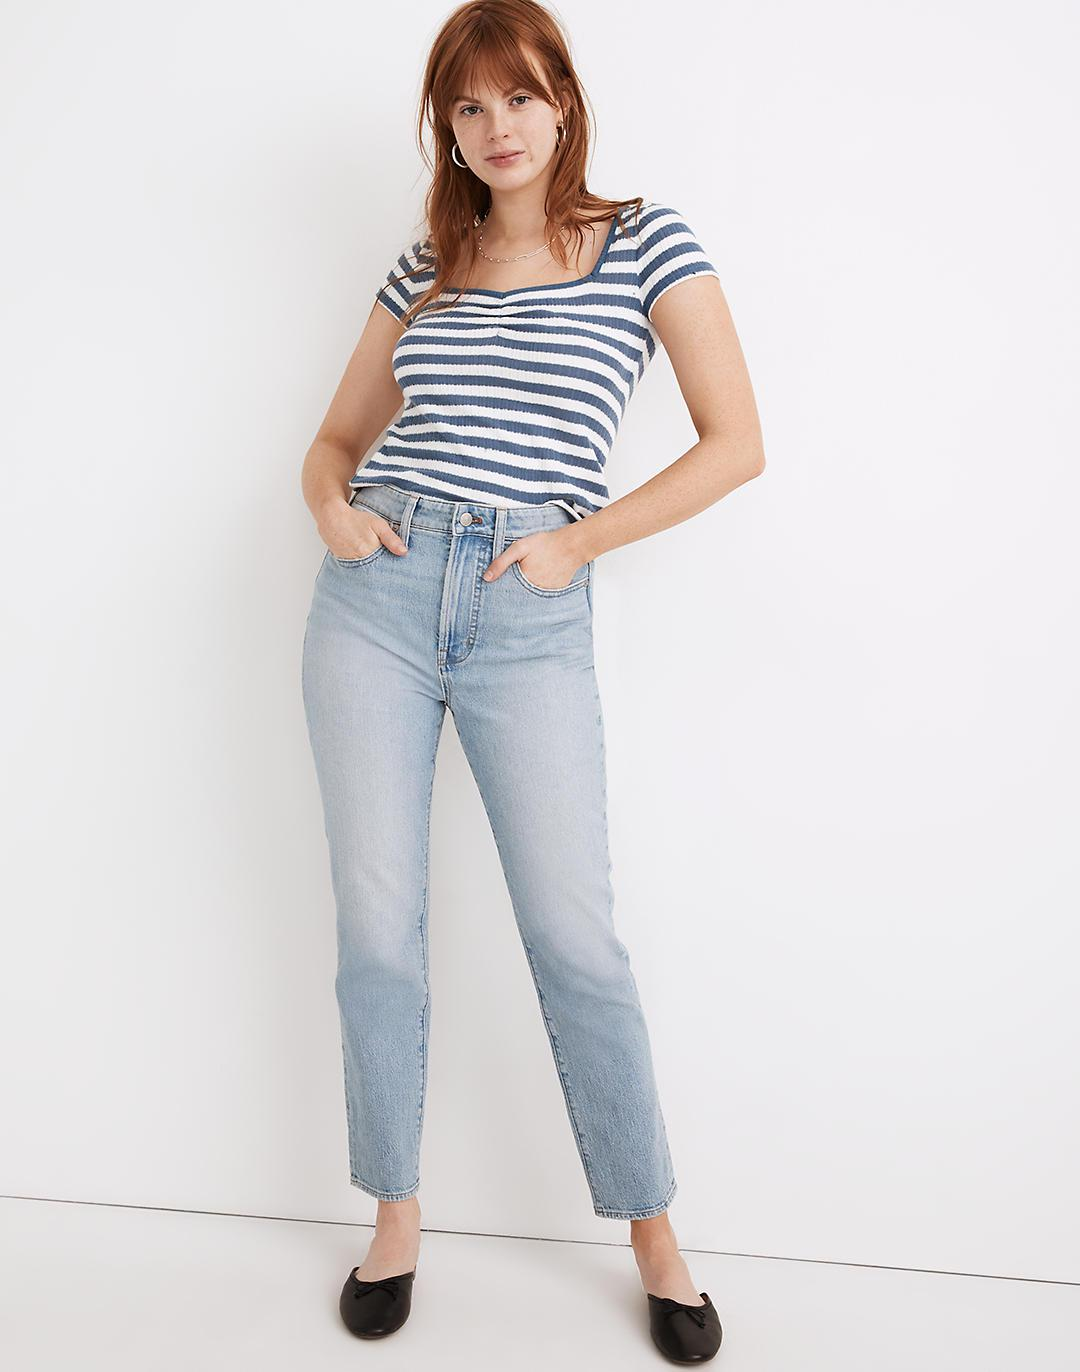 The Tall Curvy Perfect Vintage Jean in Fiore Wash